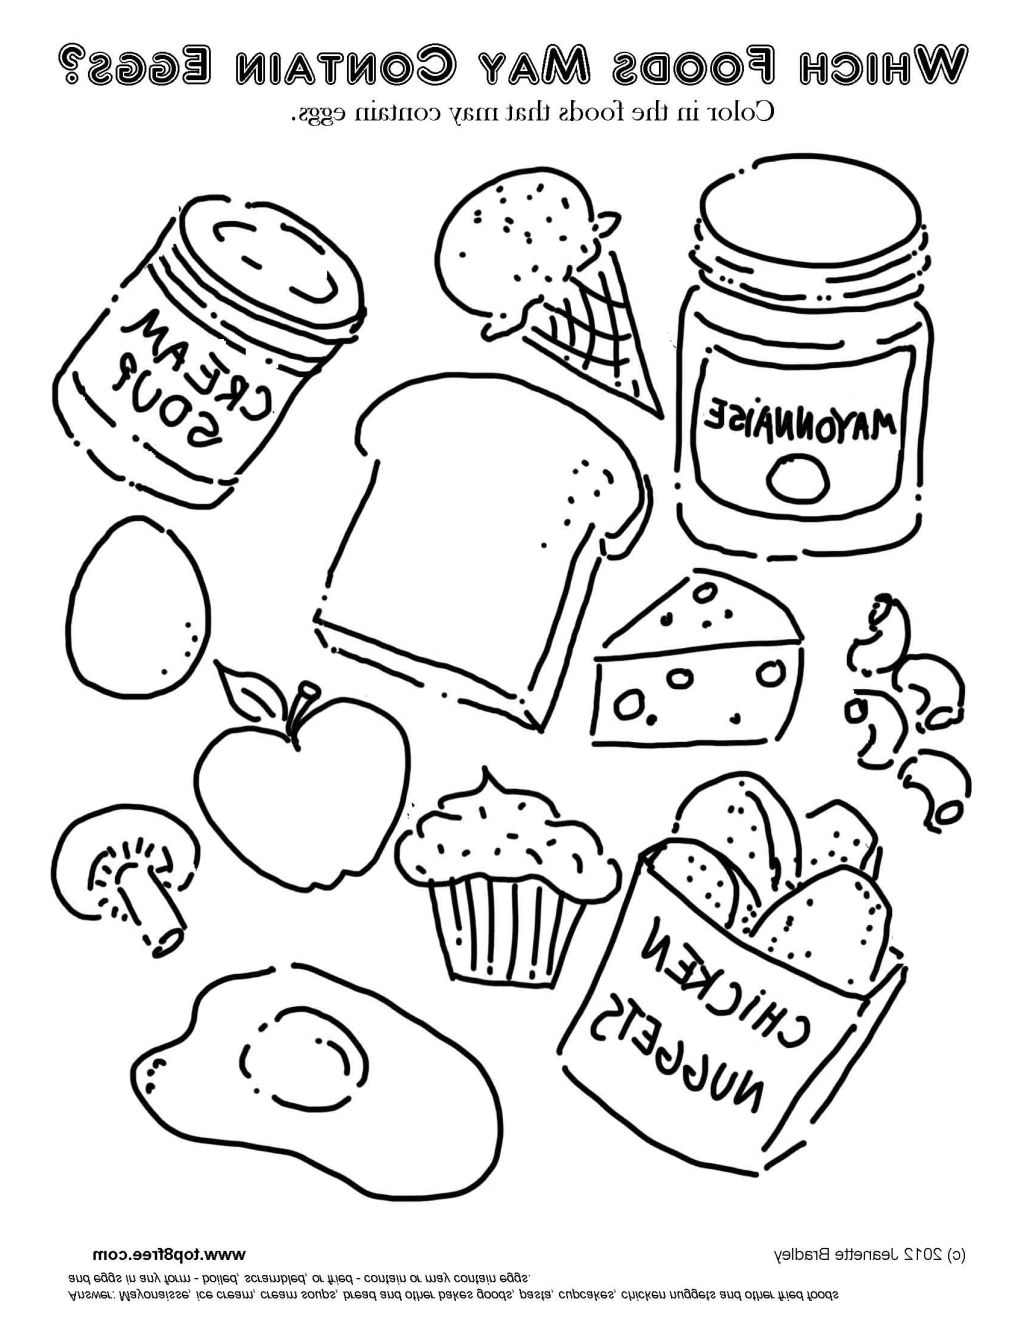 food coloring sheets canned food coloring pages at getdrawings free download coloring food sheets